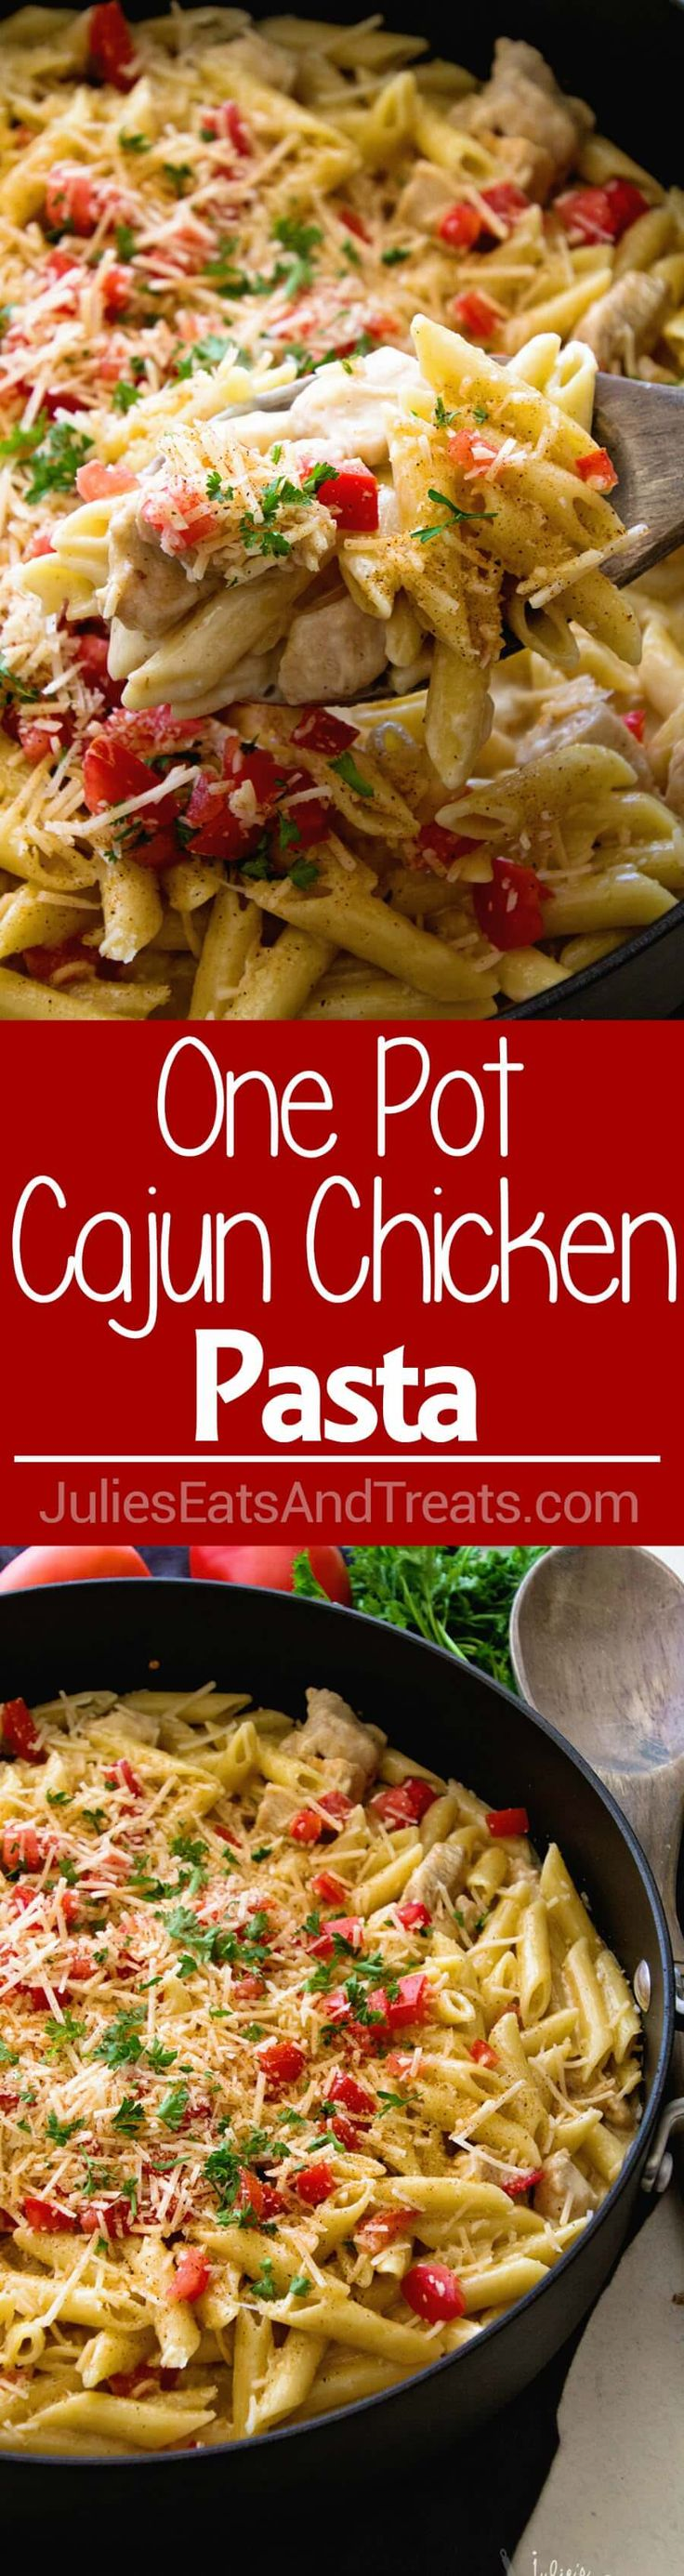 One Pot Cajun Chicken Pasta ~ Creamy Pasta Sauce with Chicken, Cheese and the Perfect Amount of Cajun Spice! Easy Dinner Recipe That's Better Than a Restaurant's! via @julieseats